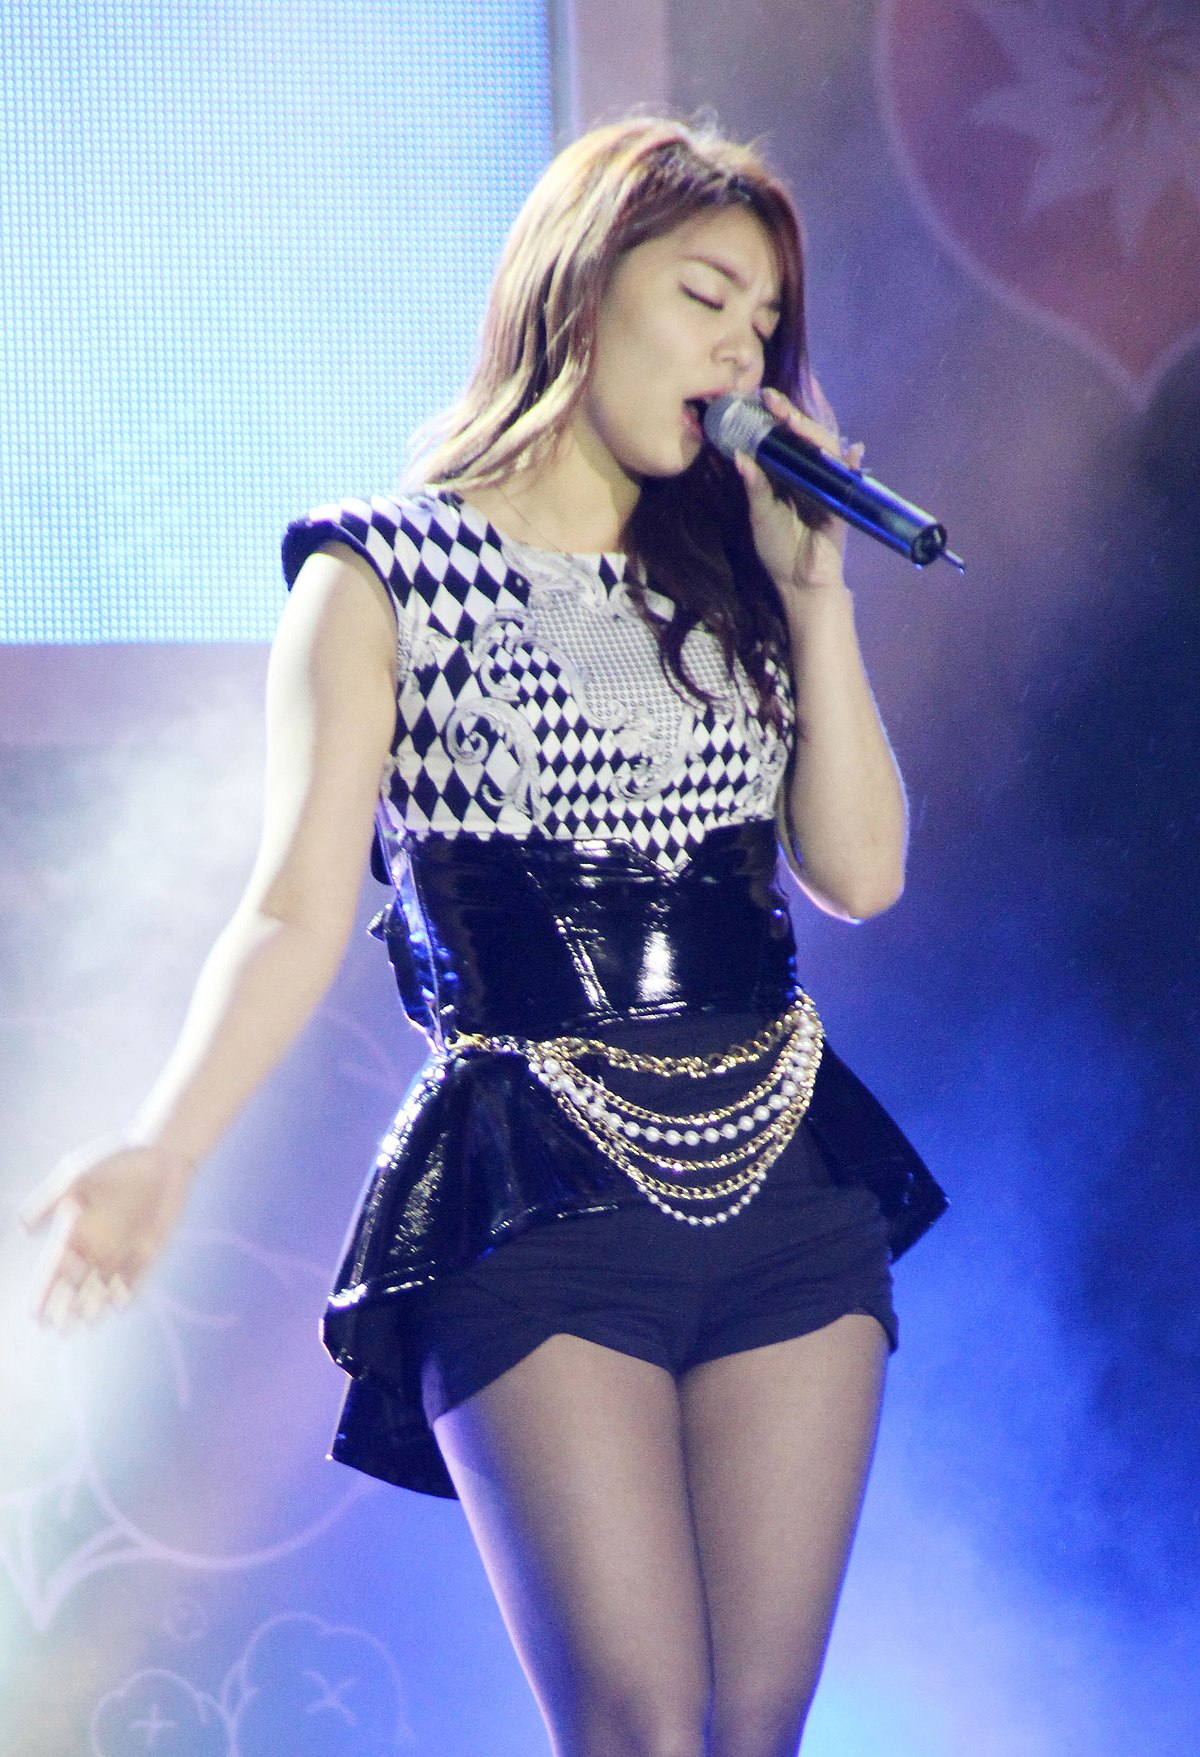 Ailee Discography - Wikipedia